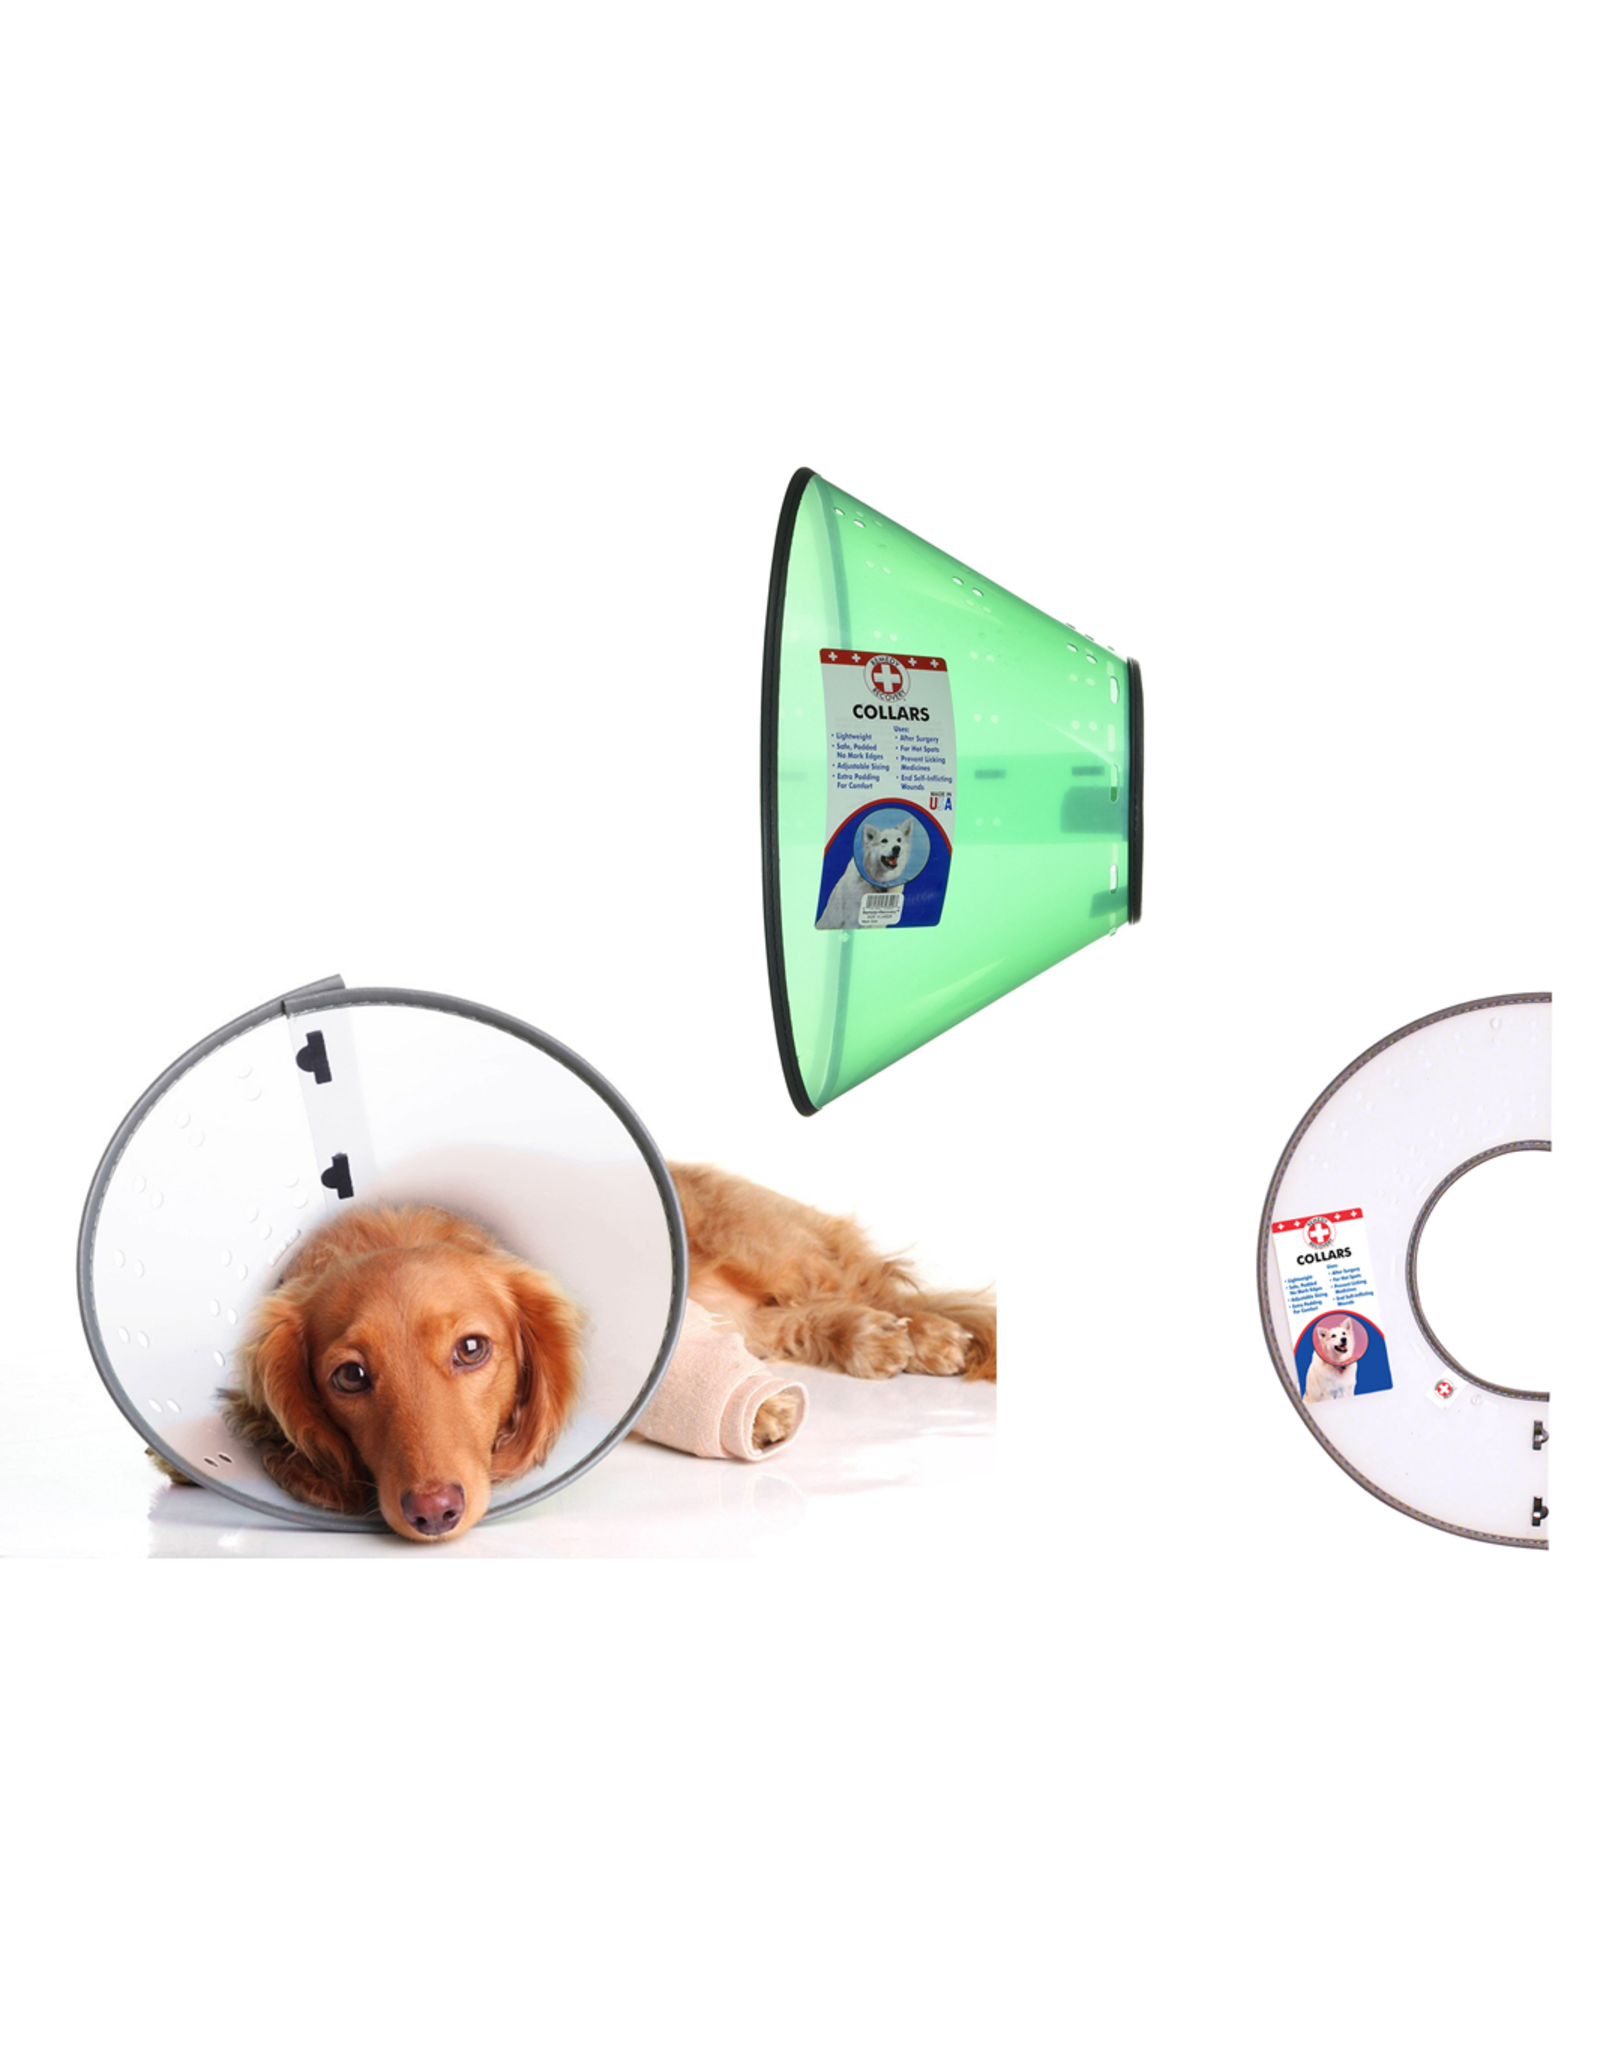 Remedy Recovery Remedy Recovery Cone Collar E Collar for Dogs and Cats